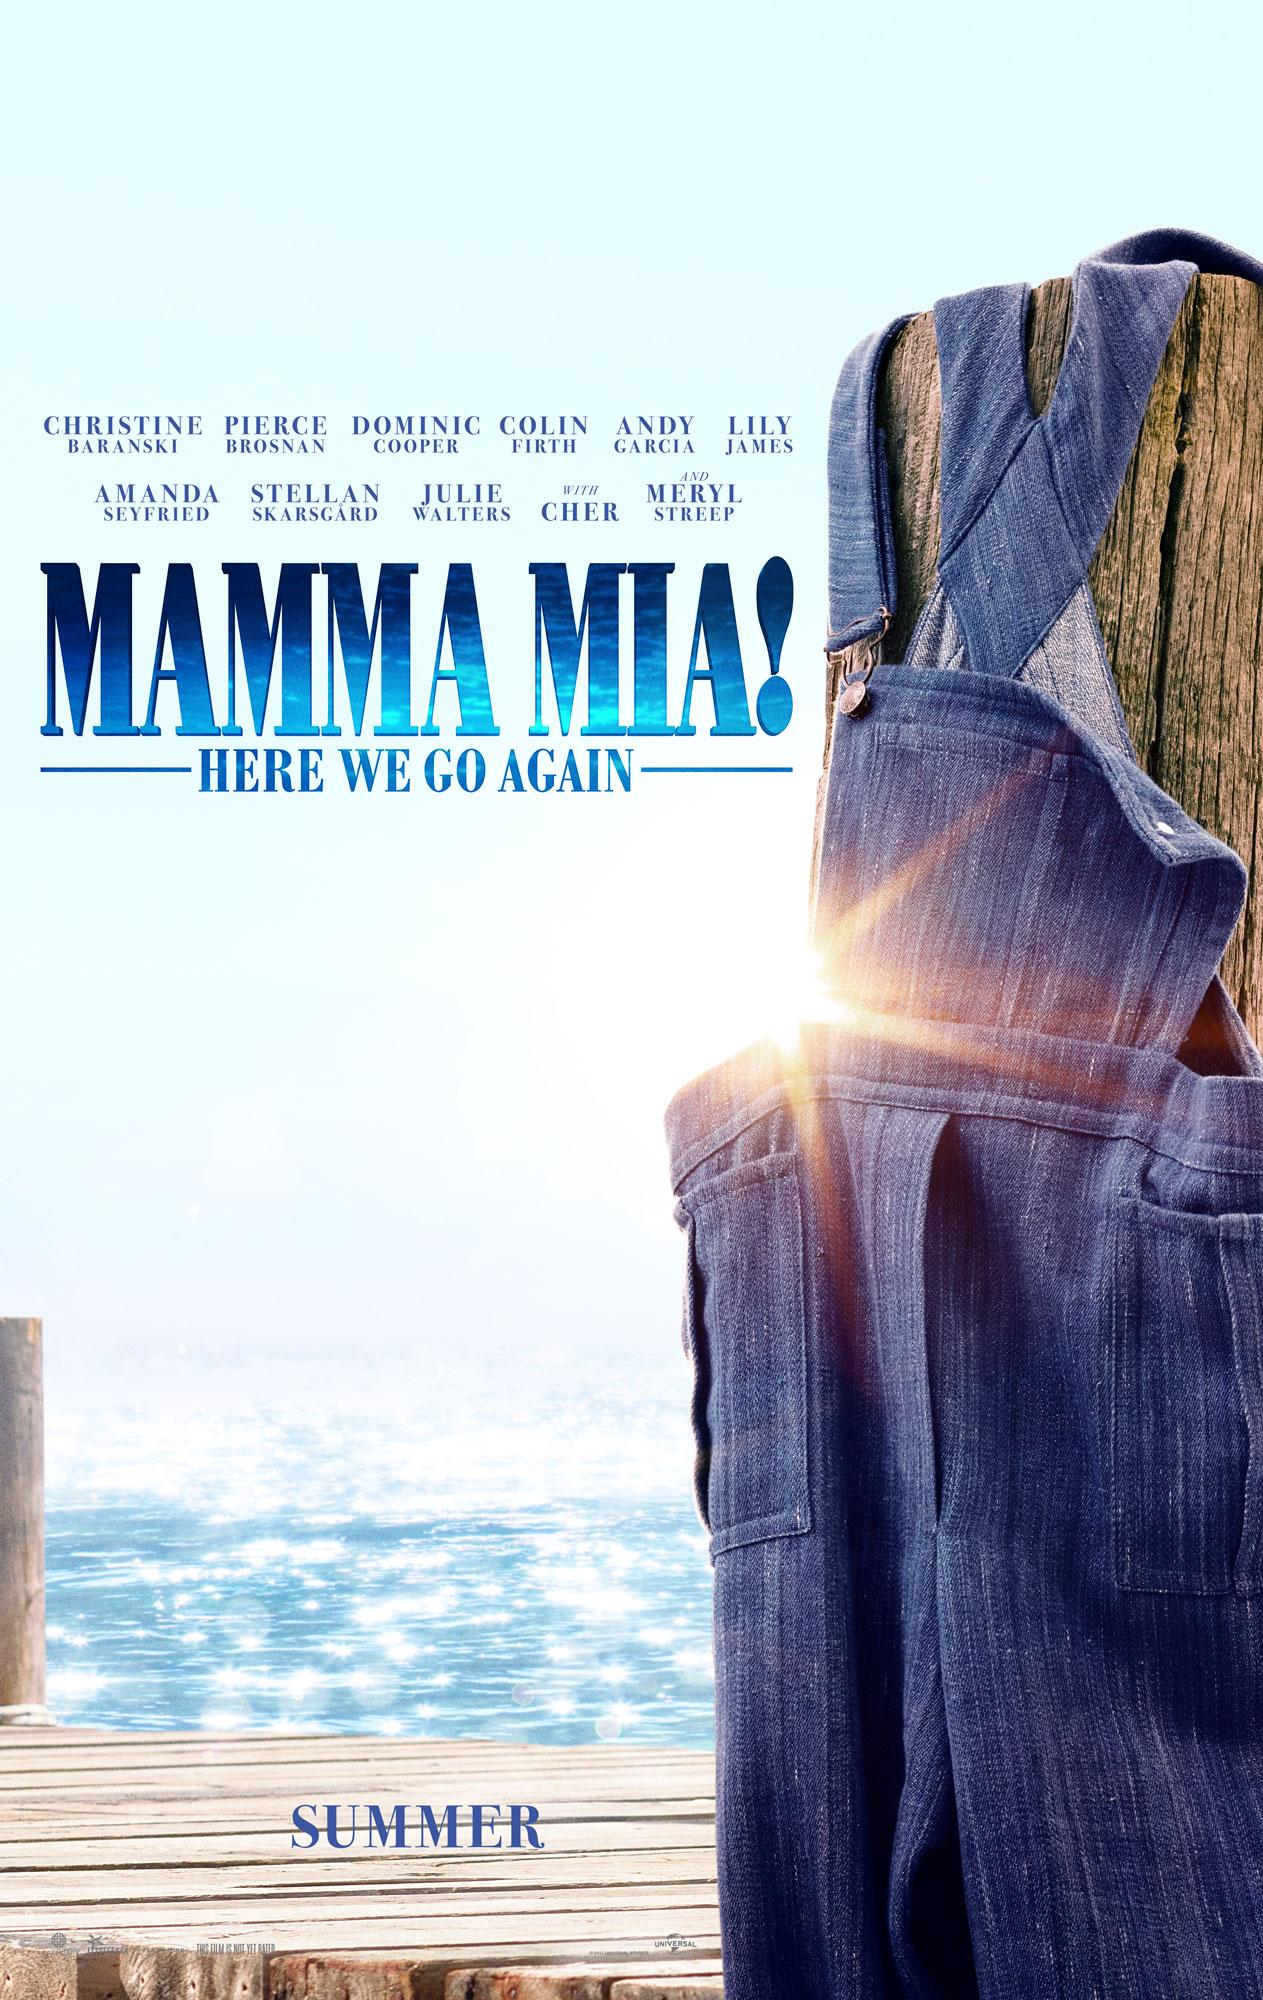 Mamma Mia! Here We Go Again offical poster